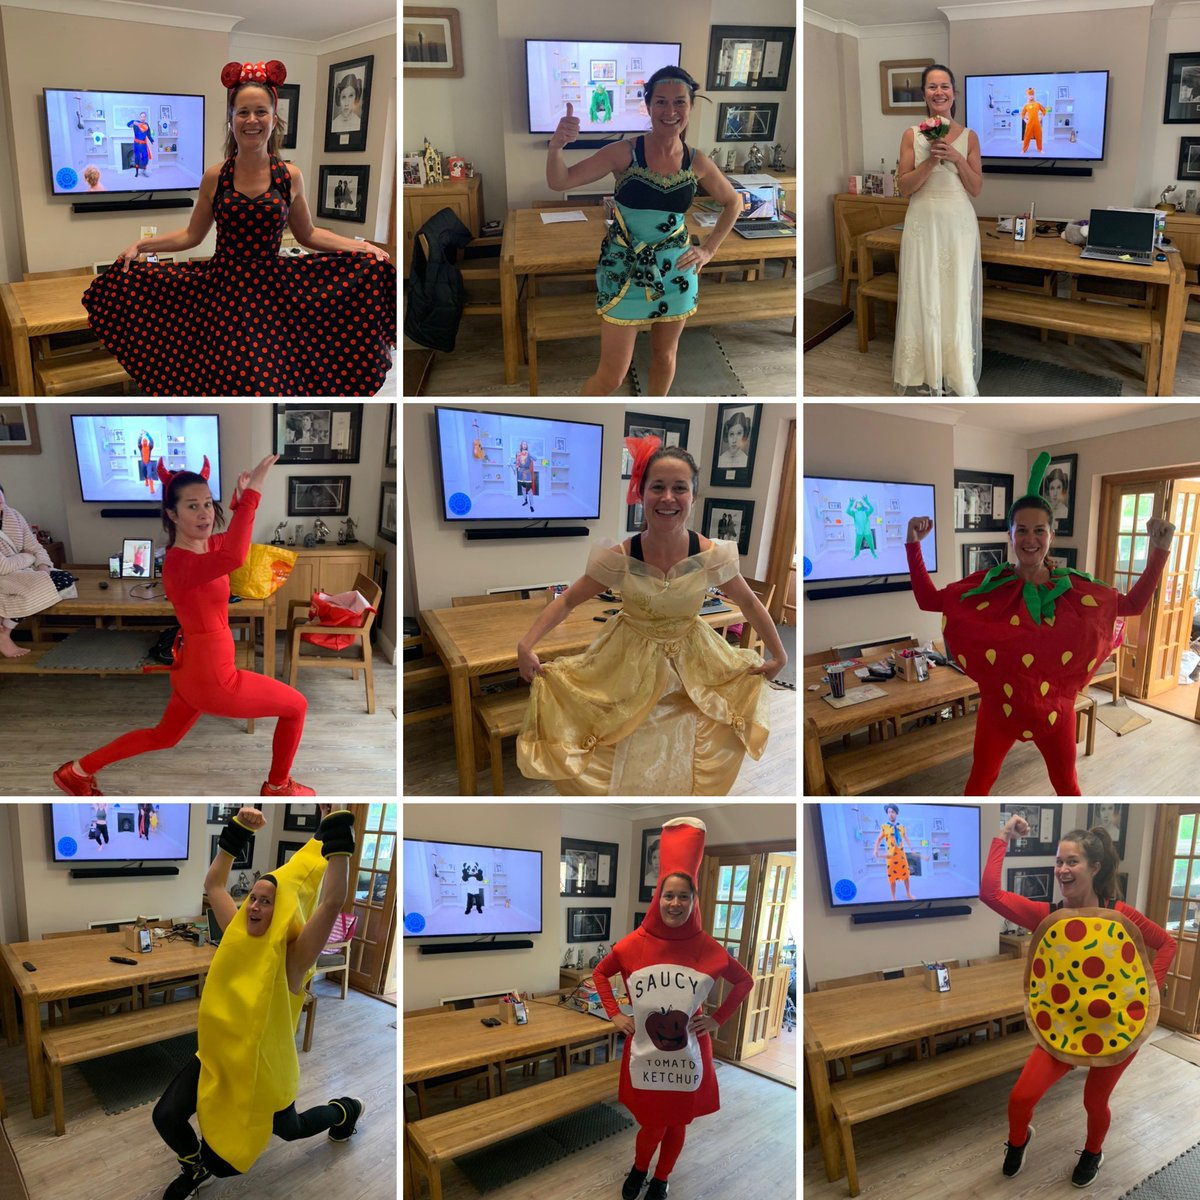 Sam has joined you from west wickham every morning @thebodycoach. Thank you for keeping her fit and happy in Lockdown! #fancydresspewithjoe #fancydressfriday #PEWithJoe #pewithjoewicks #westwickham #bromley #UnitedKingdom #London #staysafe https://t.co/J0laD6PvX8